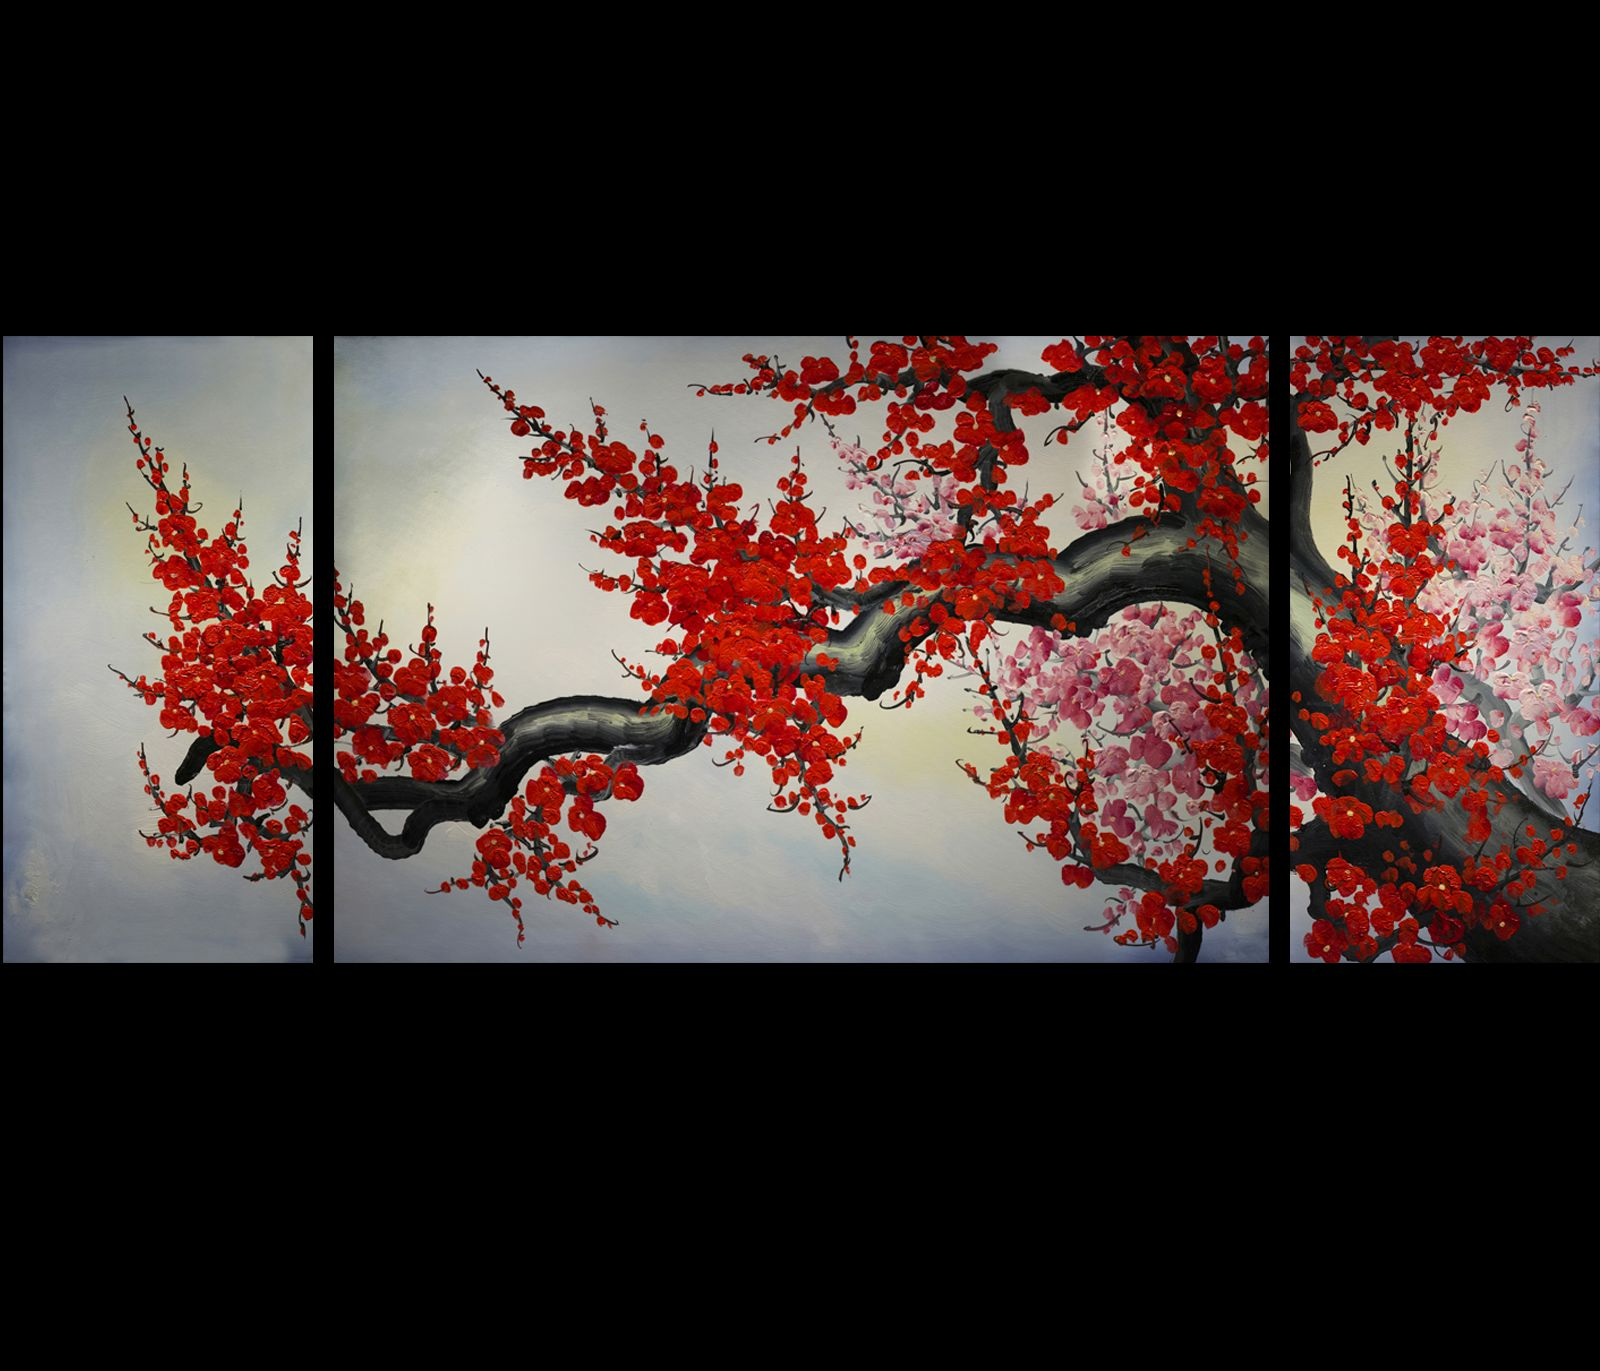 Modern wall art d cor japanese cherry blossom painting for Cherry blossom mural works